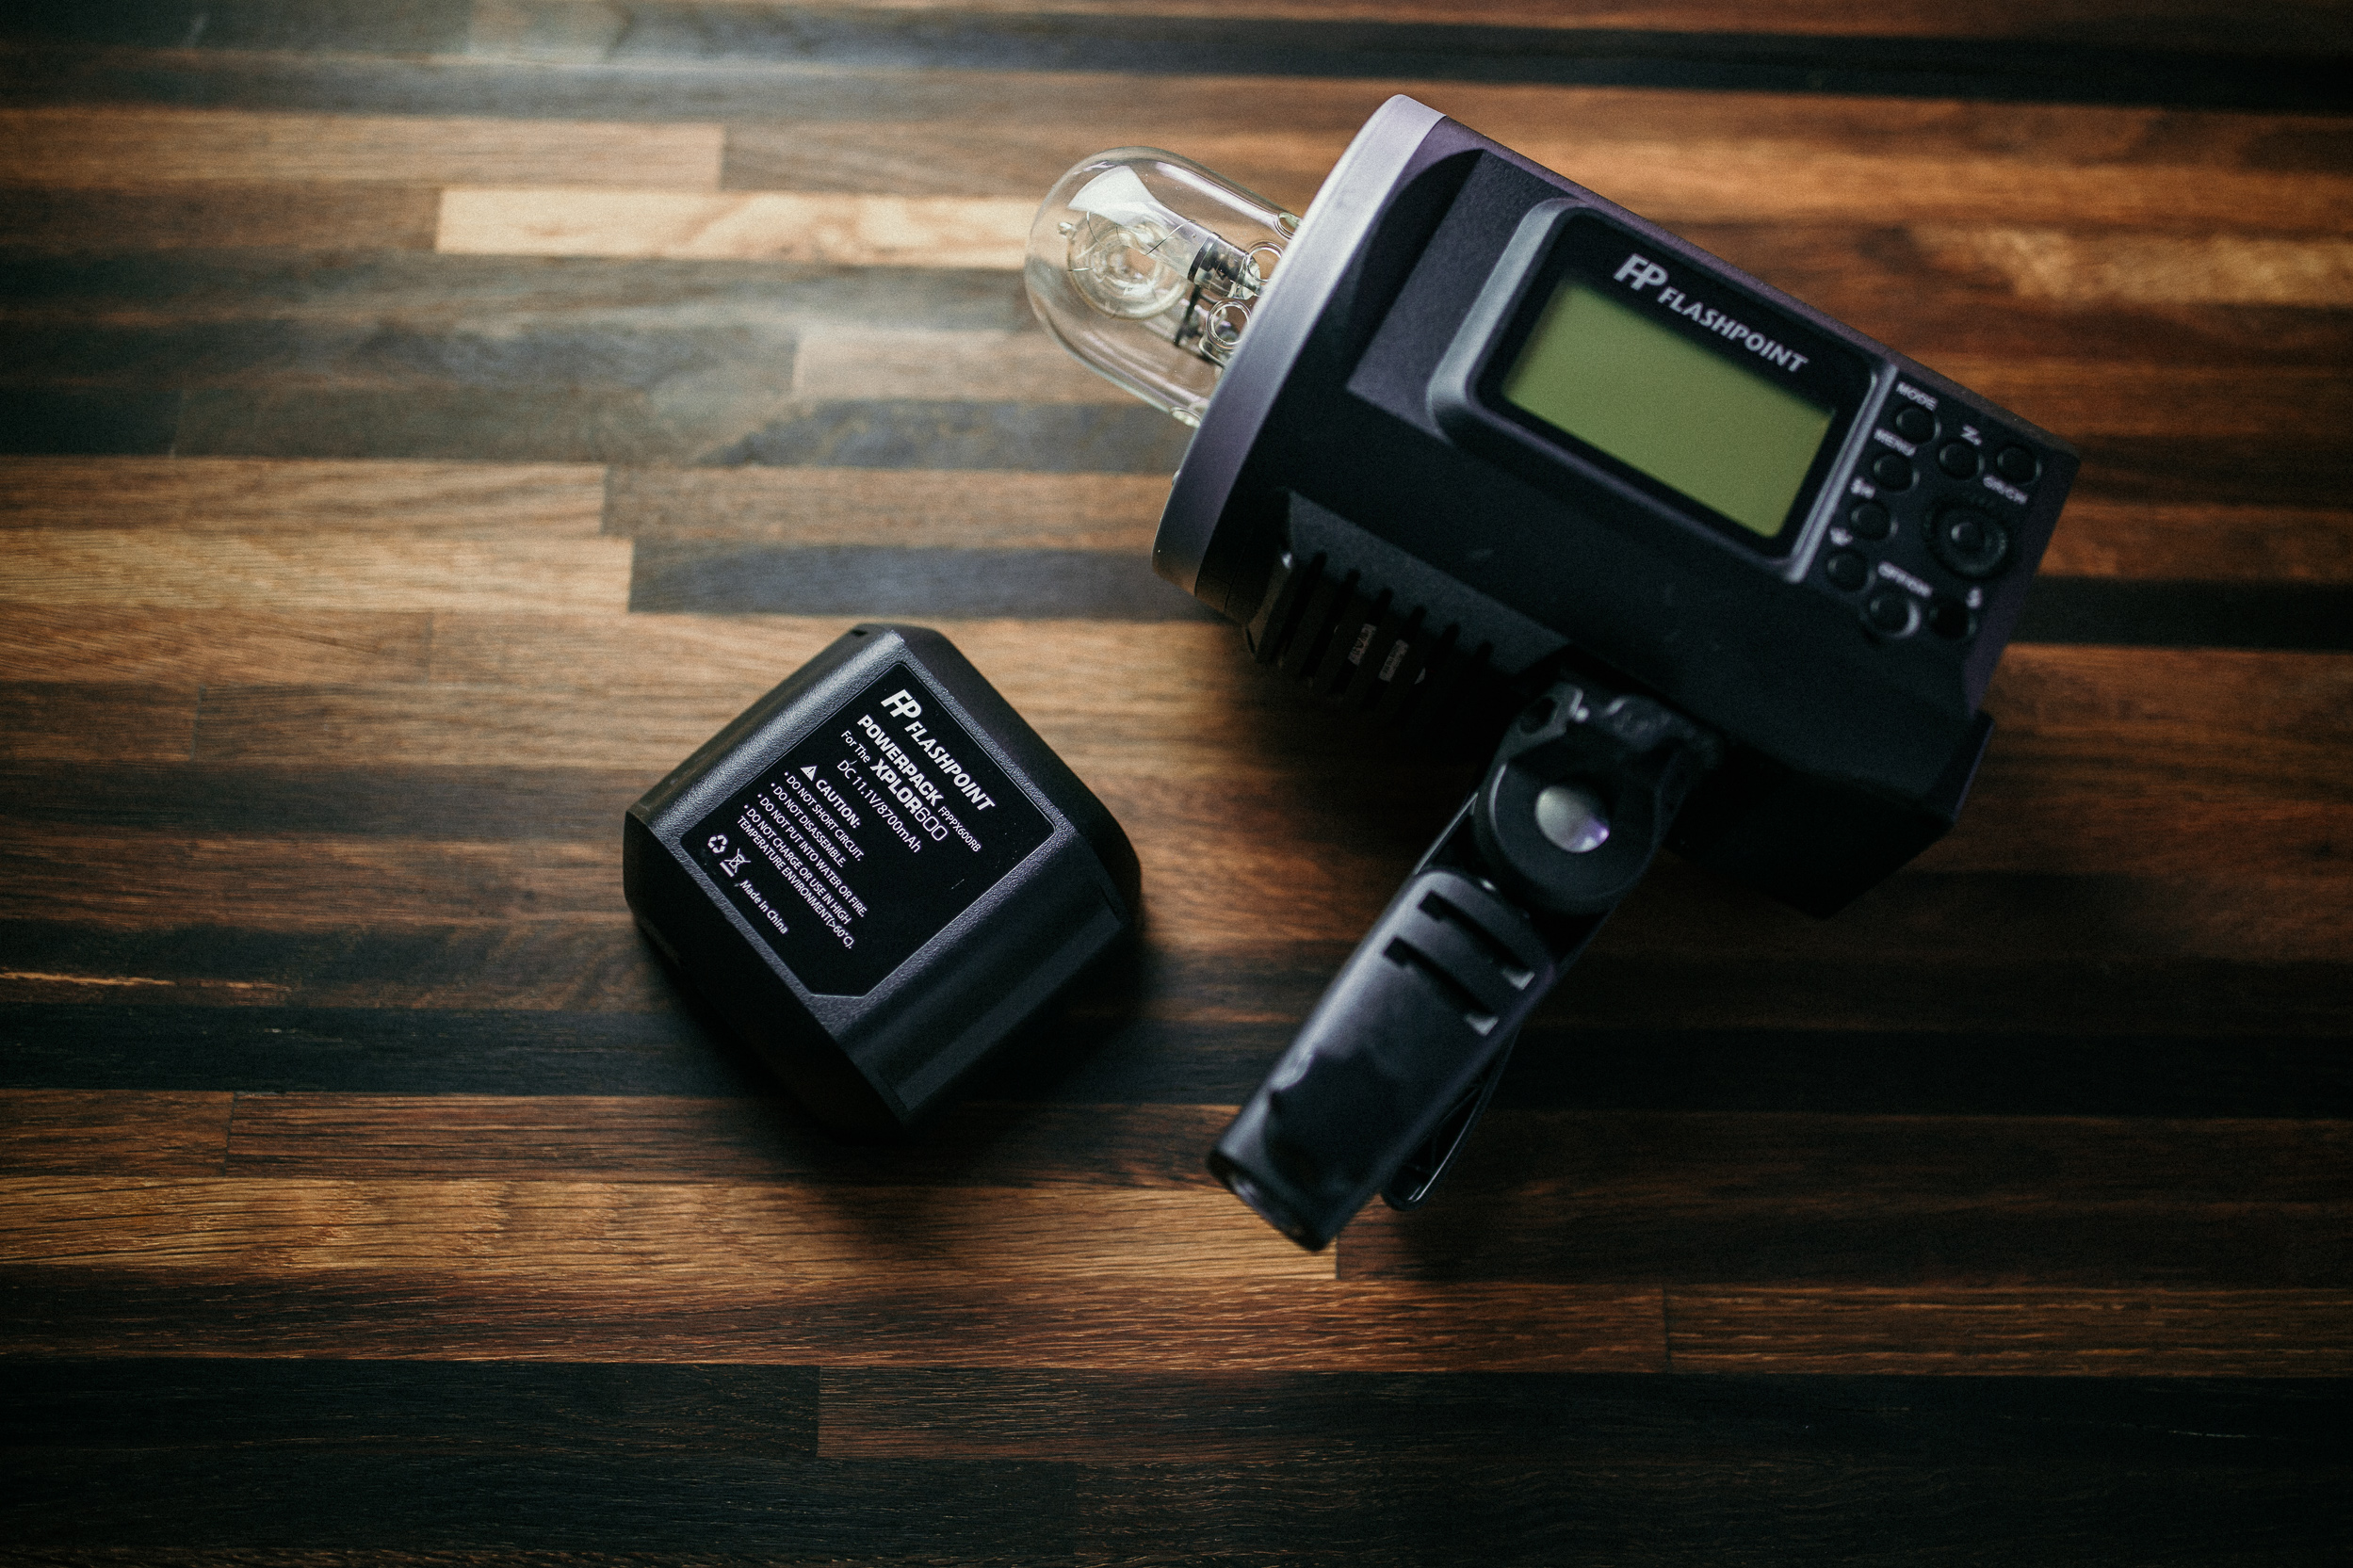 The AD600 is also battery powered, making it convenient to take on location.